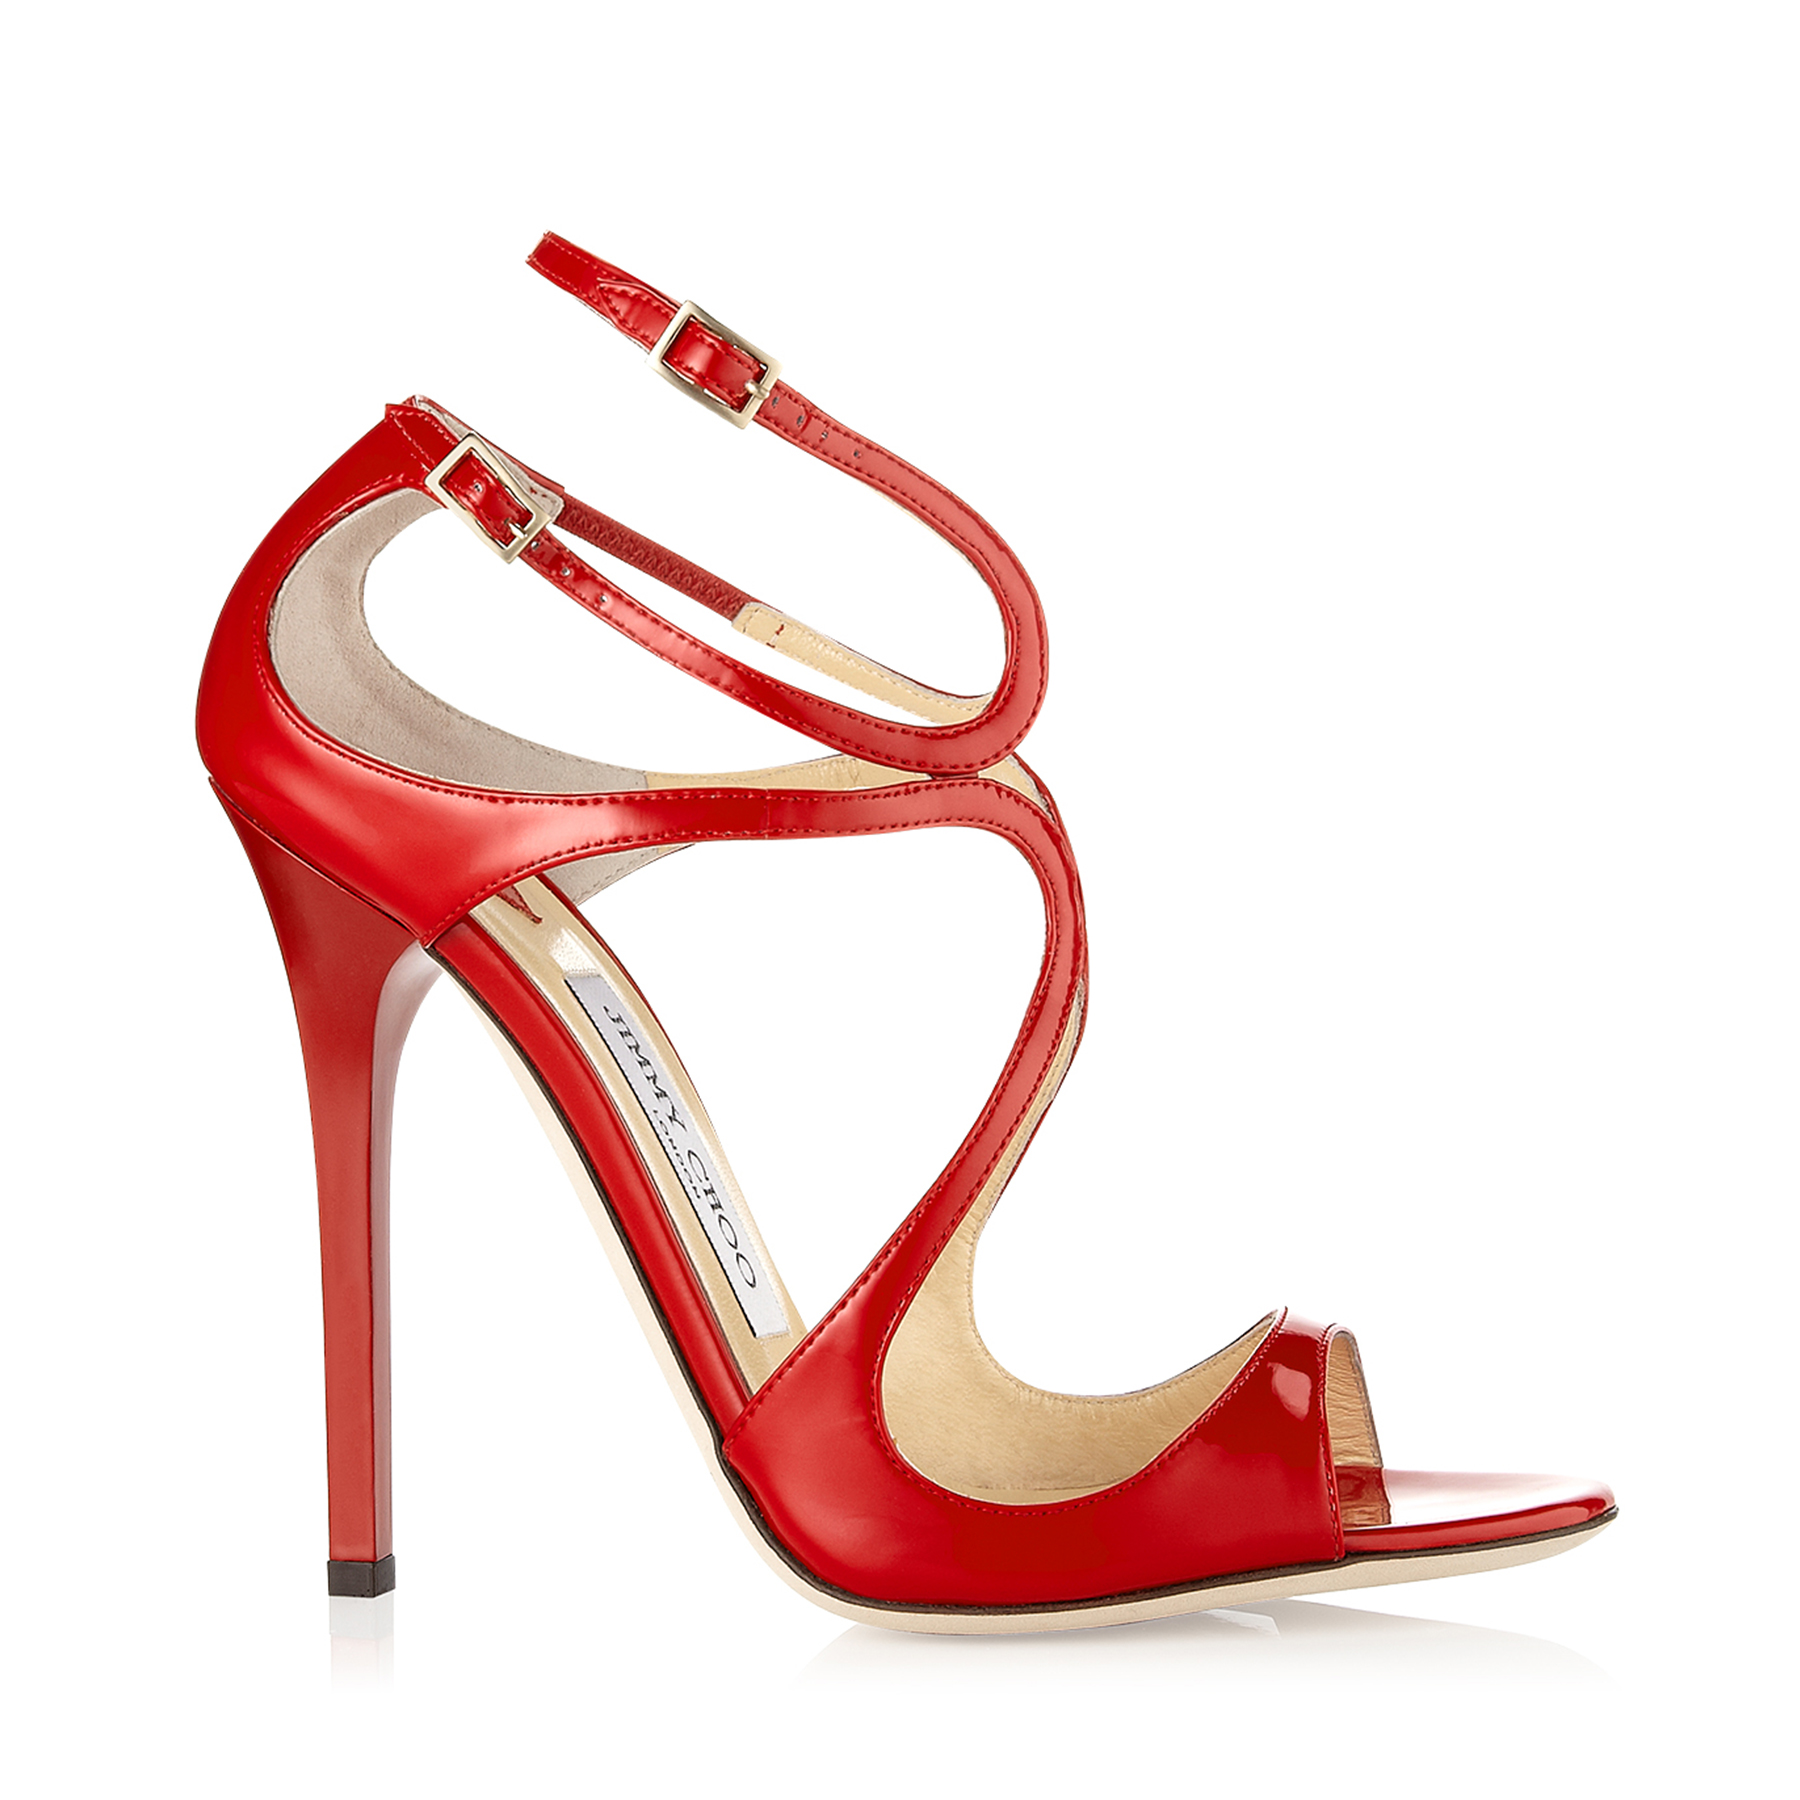 LANCE Red Patent Leather Strappy Sandals by Jimmy Choo